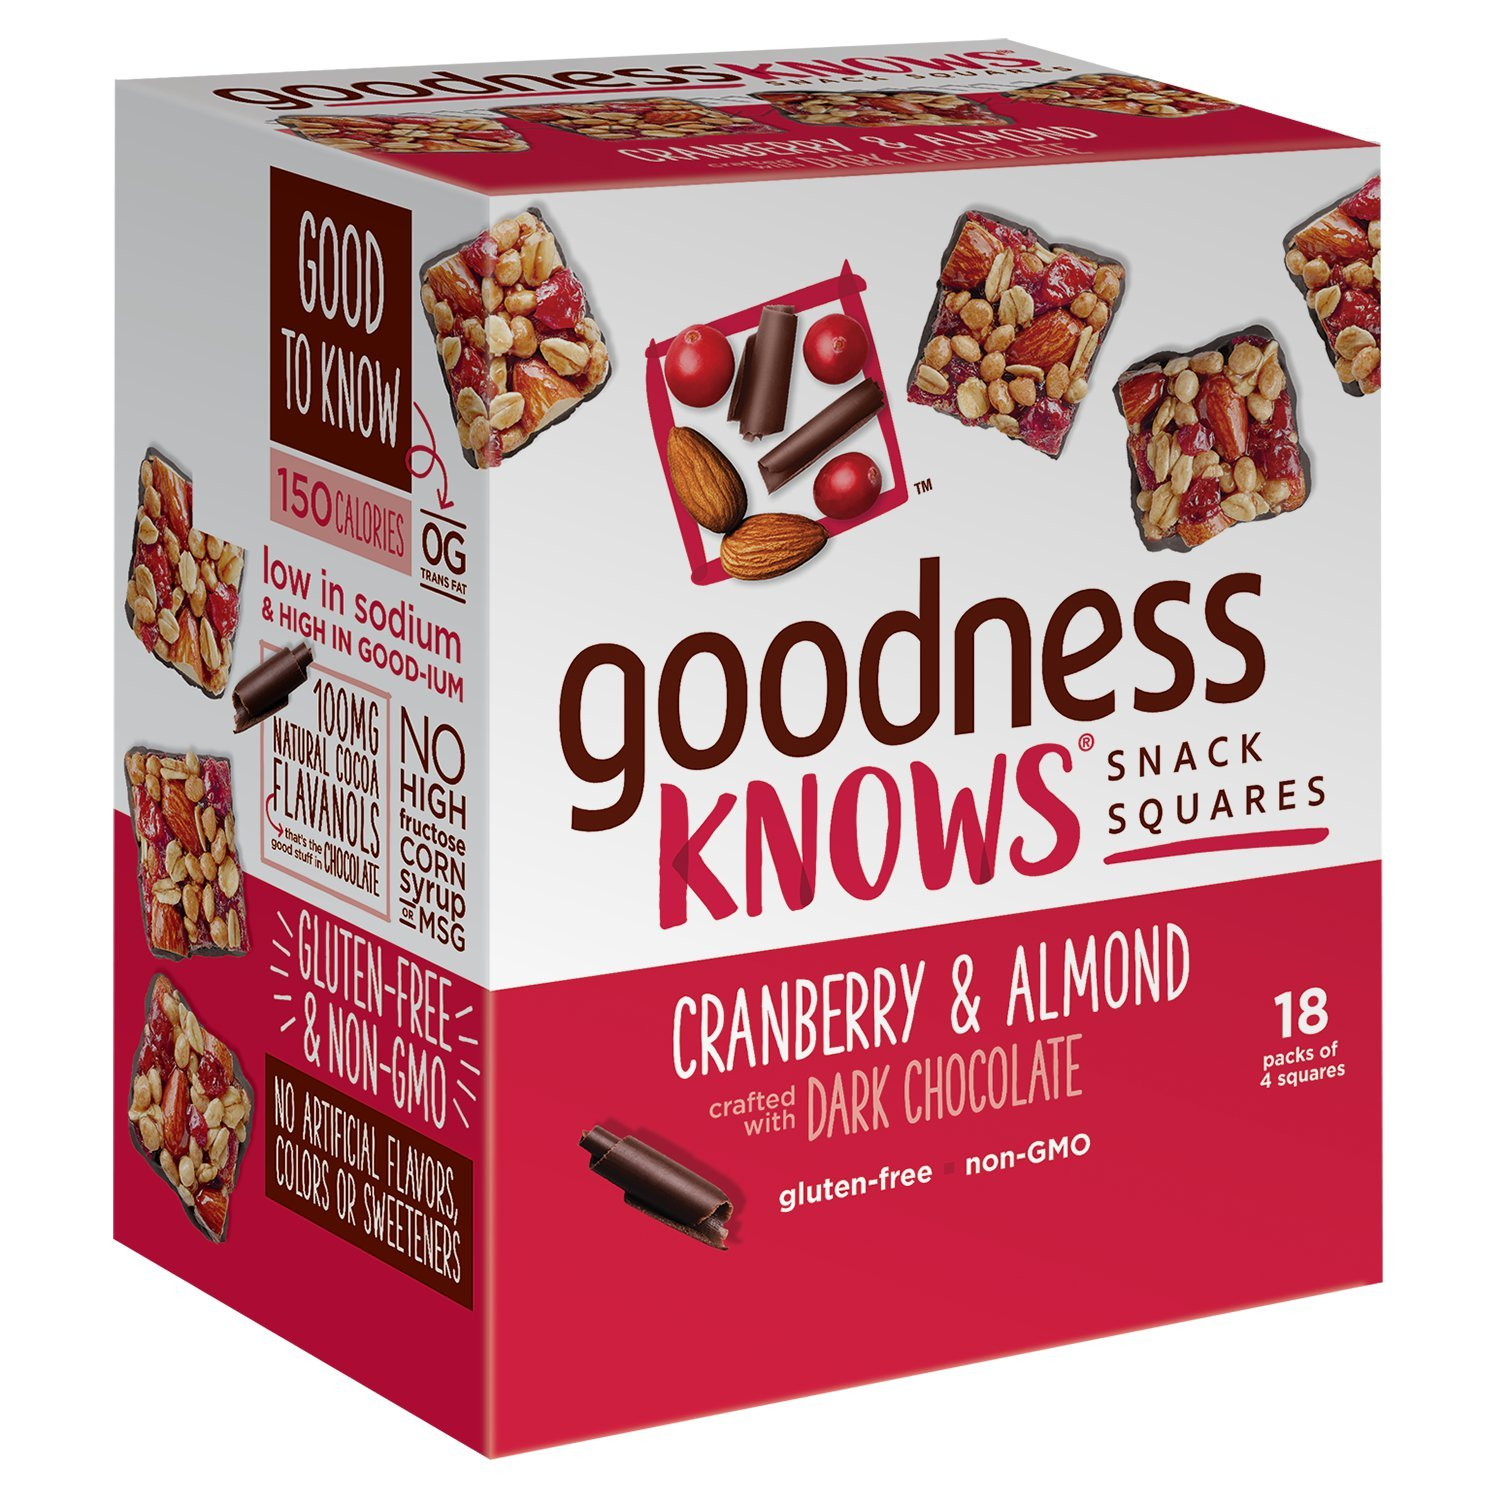 Goodness Knows Cranberry, Almond & Dark Chocolate Gluten Free Snack Square Bars 18 Count Box by Goodnessknows